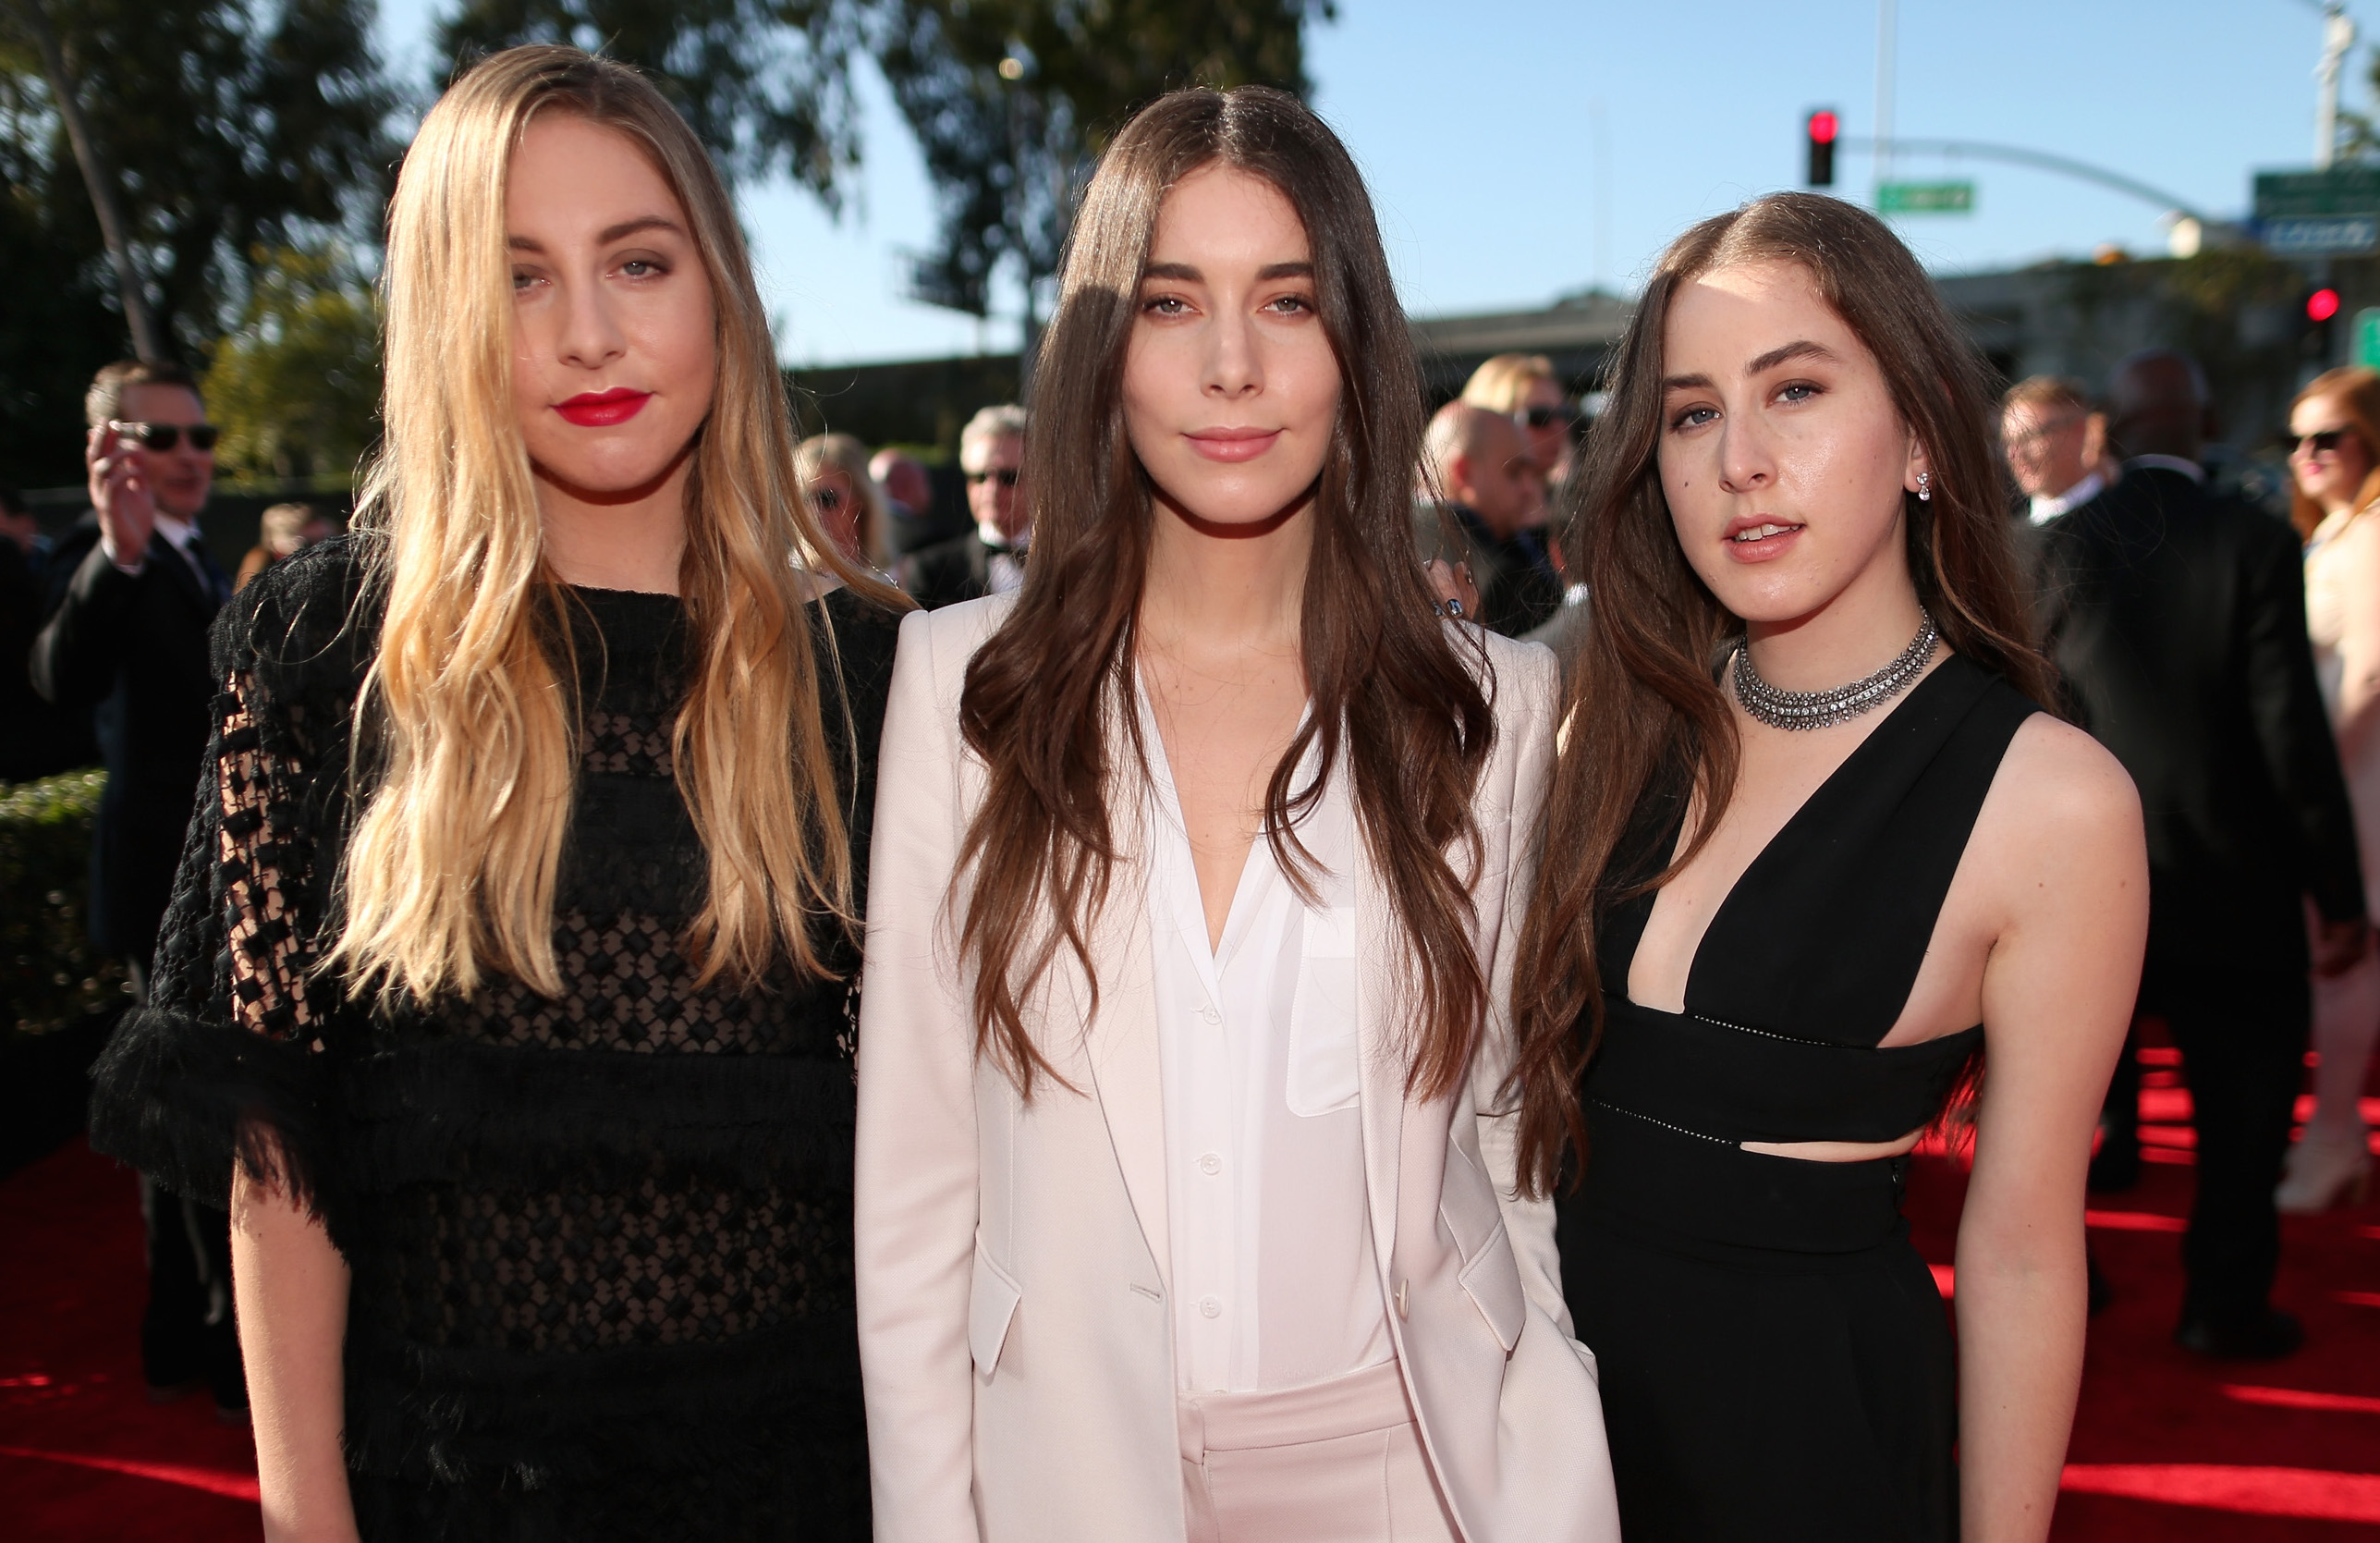 Haim fired their agent for an infuriating reason — the band wasn't receiving equal pay to play at festivals